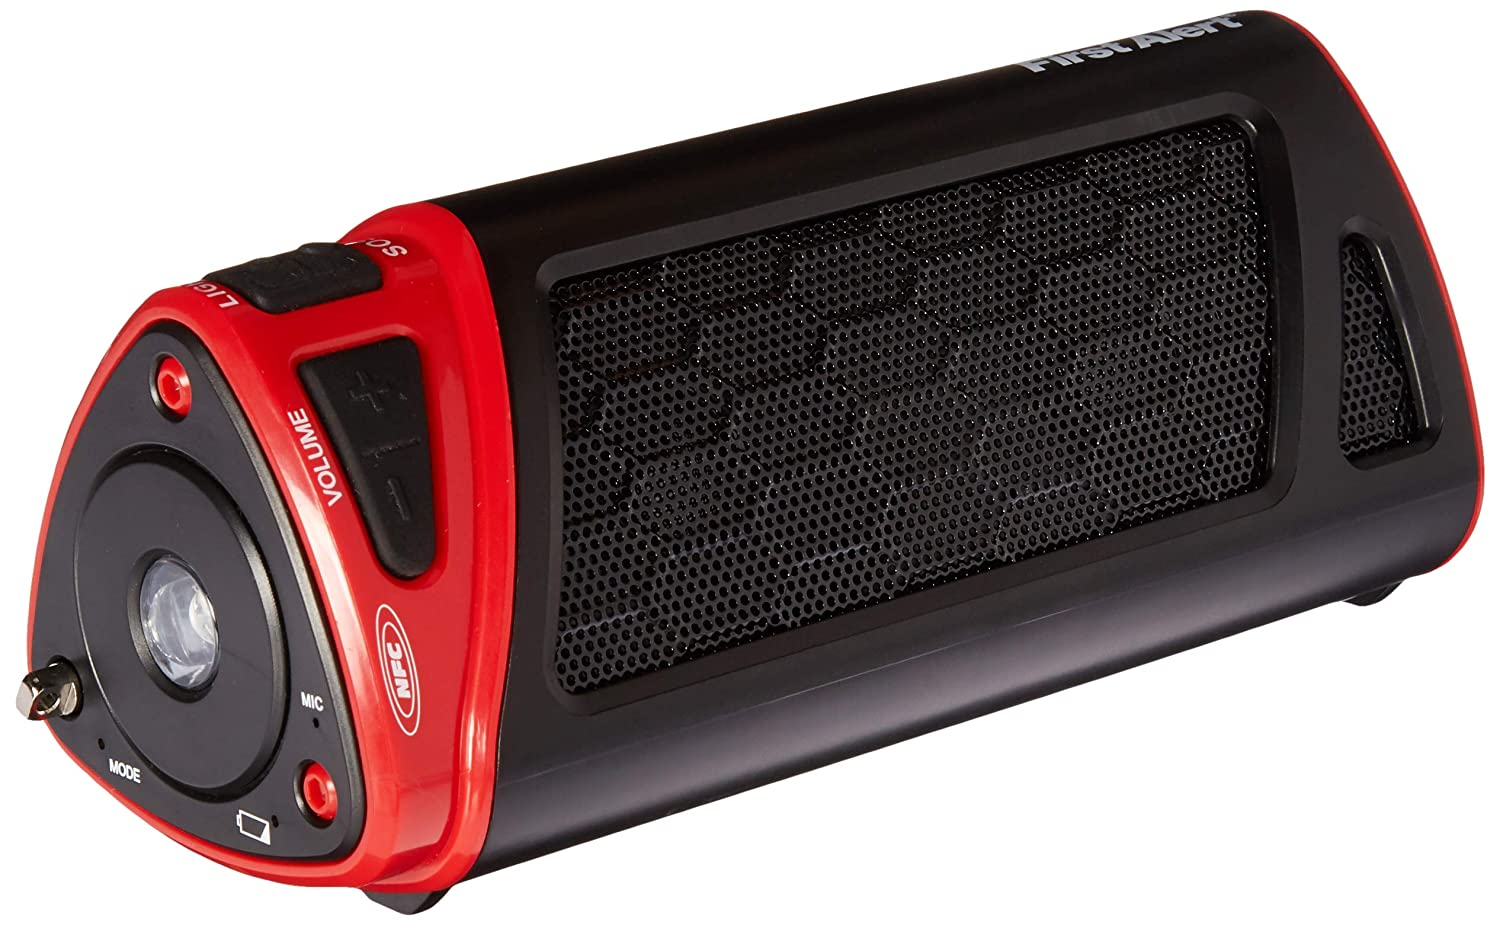 Amazon.com: First Alert sfa900 altavoz bluetooth portátil ...